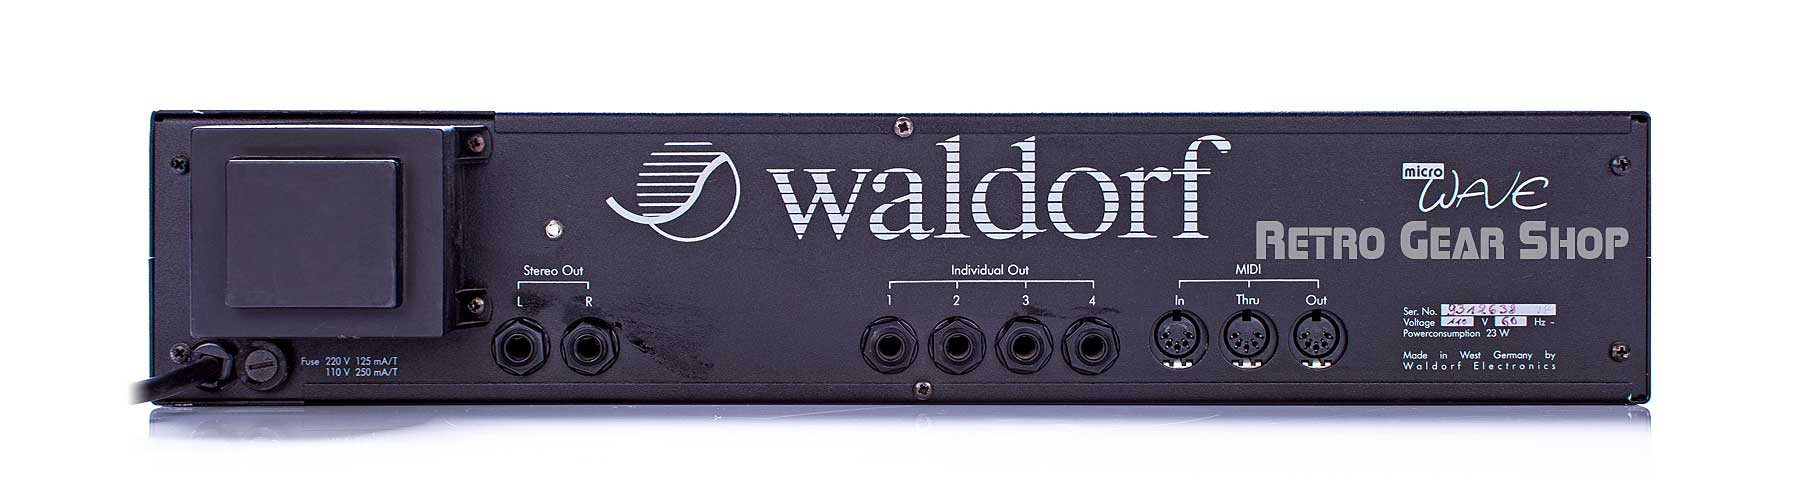 Waldorf Microwave 1 Rear